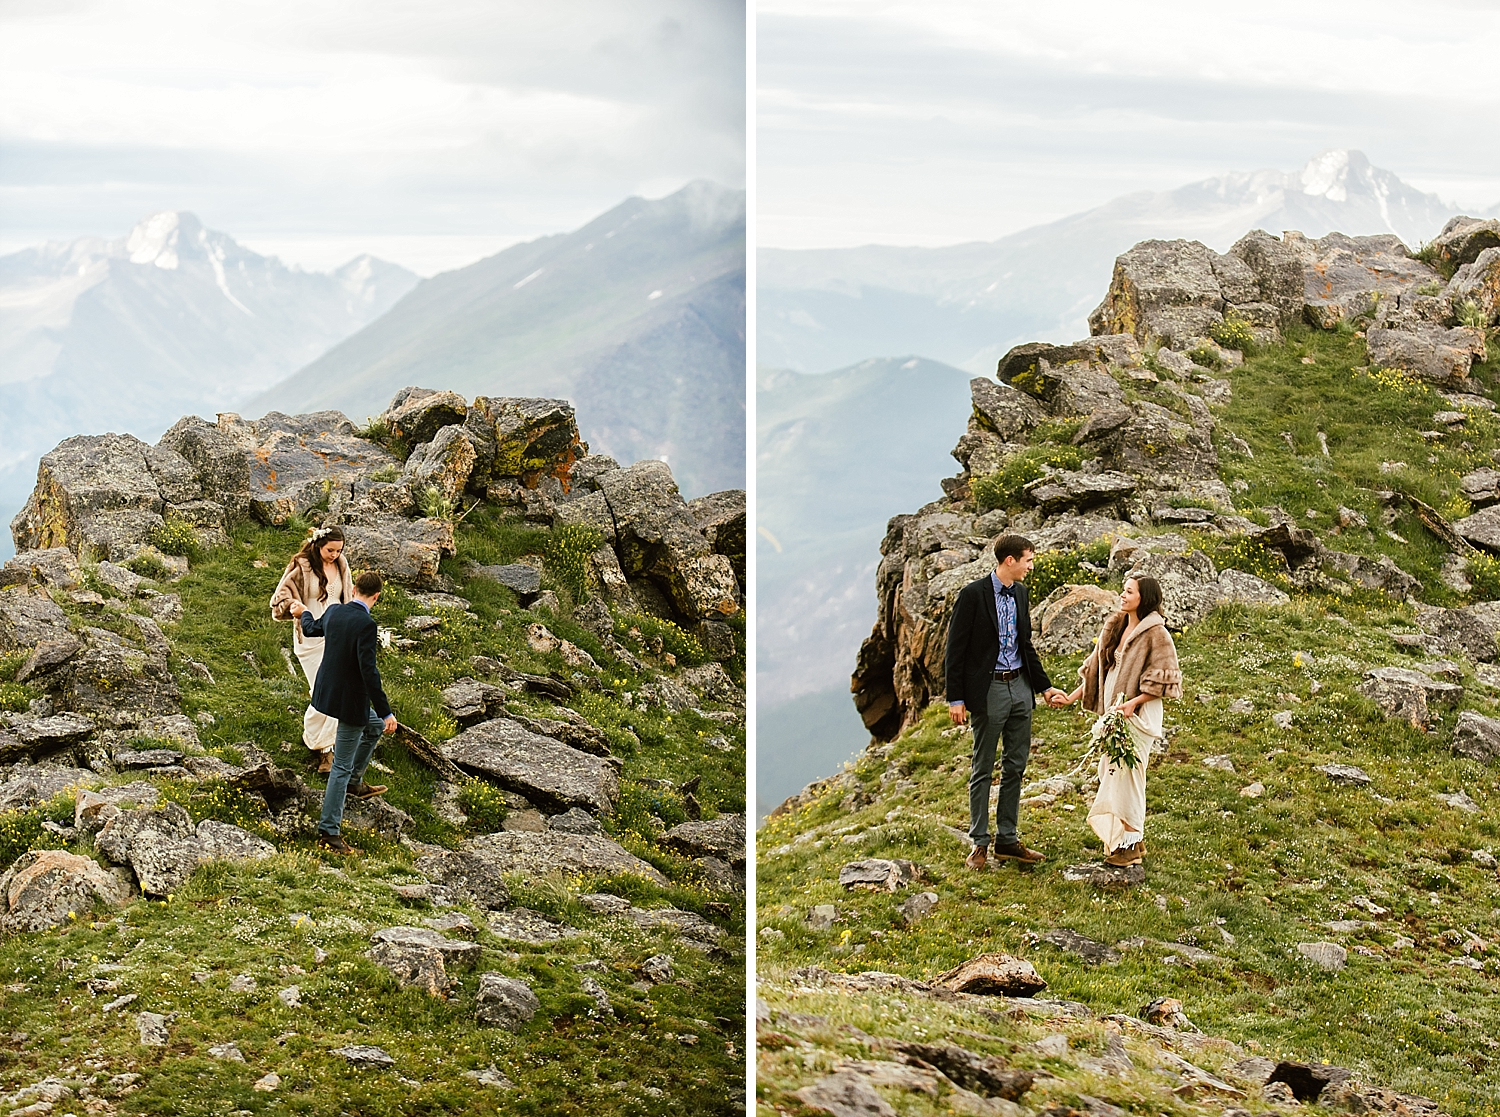 This Colorado elopement location in RMNP, Estes Park is on my list for my own elopement locations! Winter weddings up in the mountains are gorgeous! | Mountain elopement photos by Rocky Mountain National Park wedding photographer, Maddie Mae.